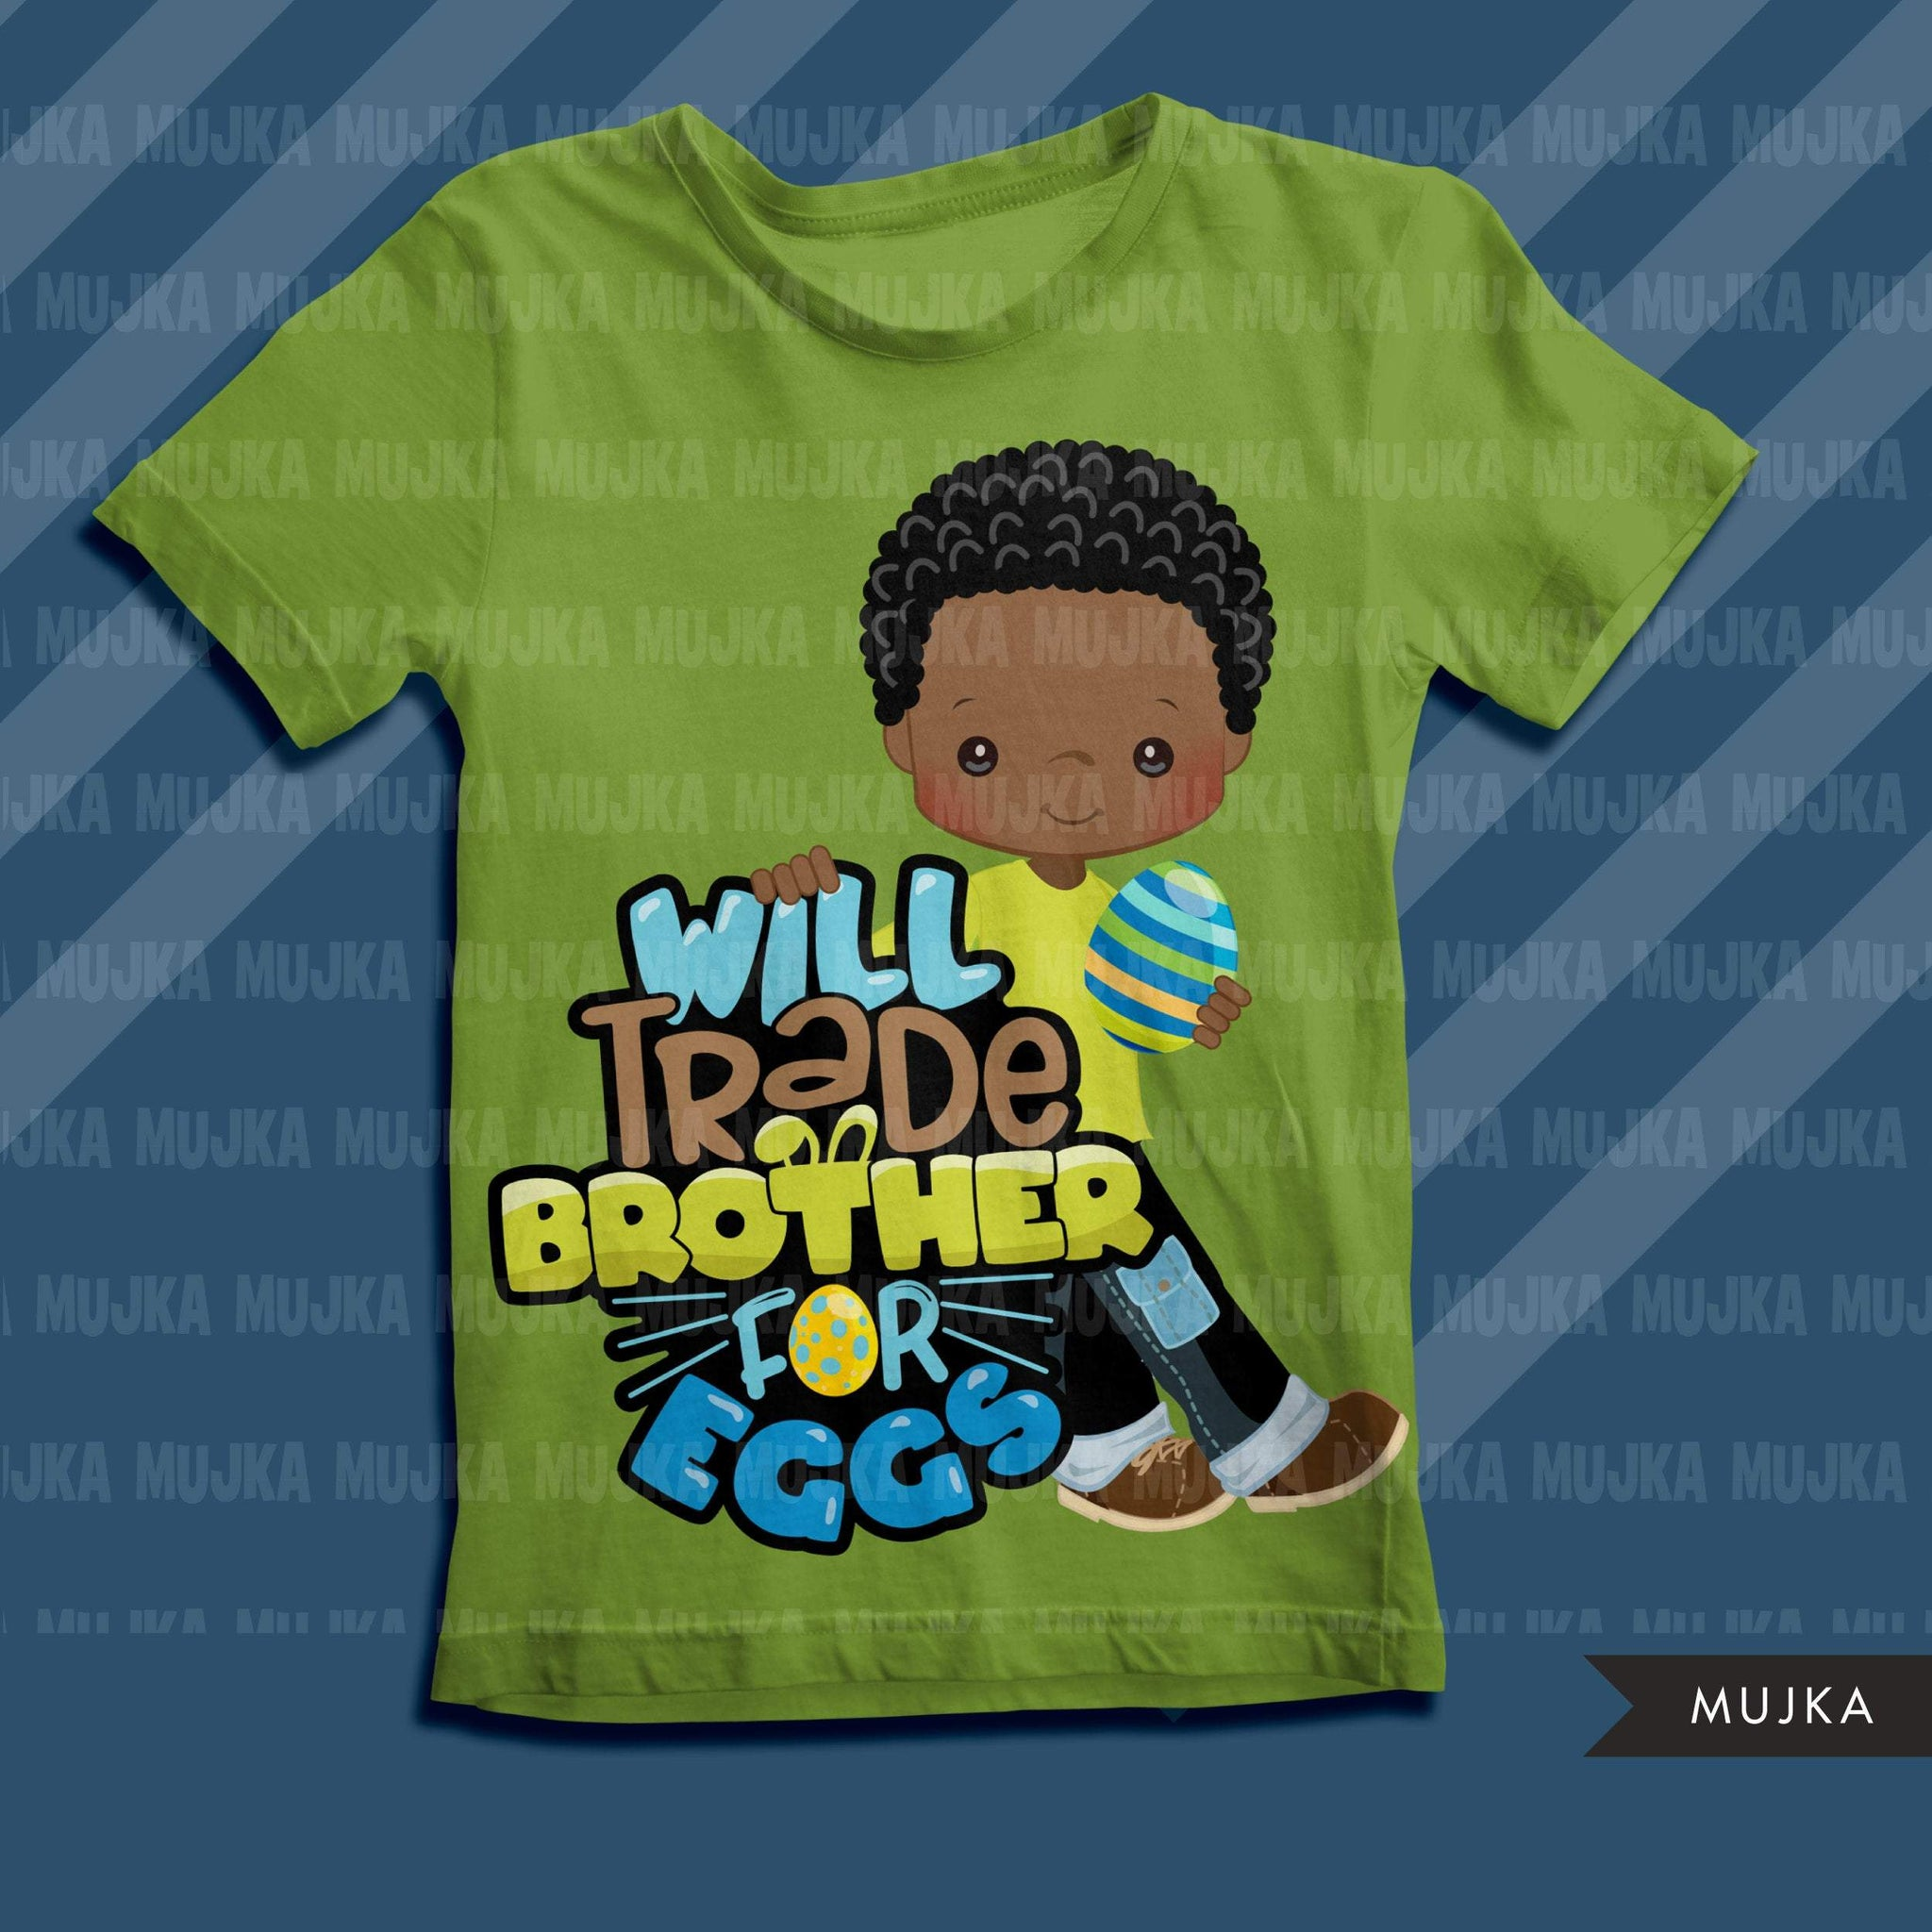 Easter PNG digital, Will trade brother for eggs Printable HTV sublimation image transfer clipart, t-shirt Afro black boy graphics